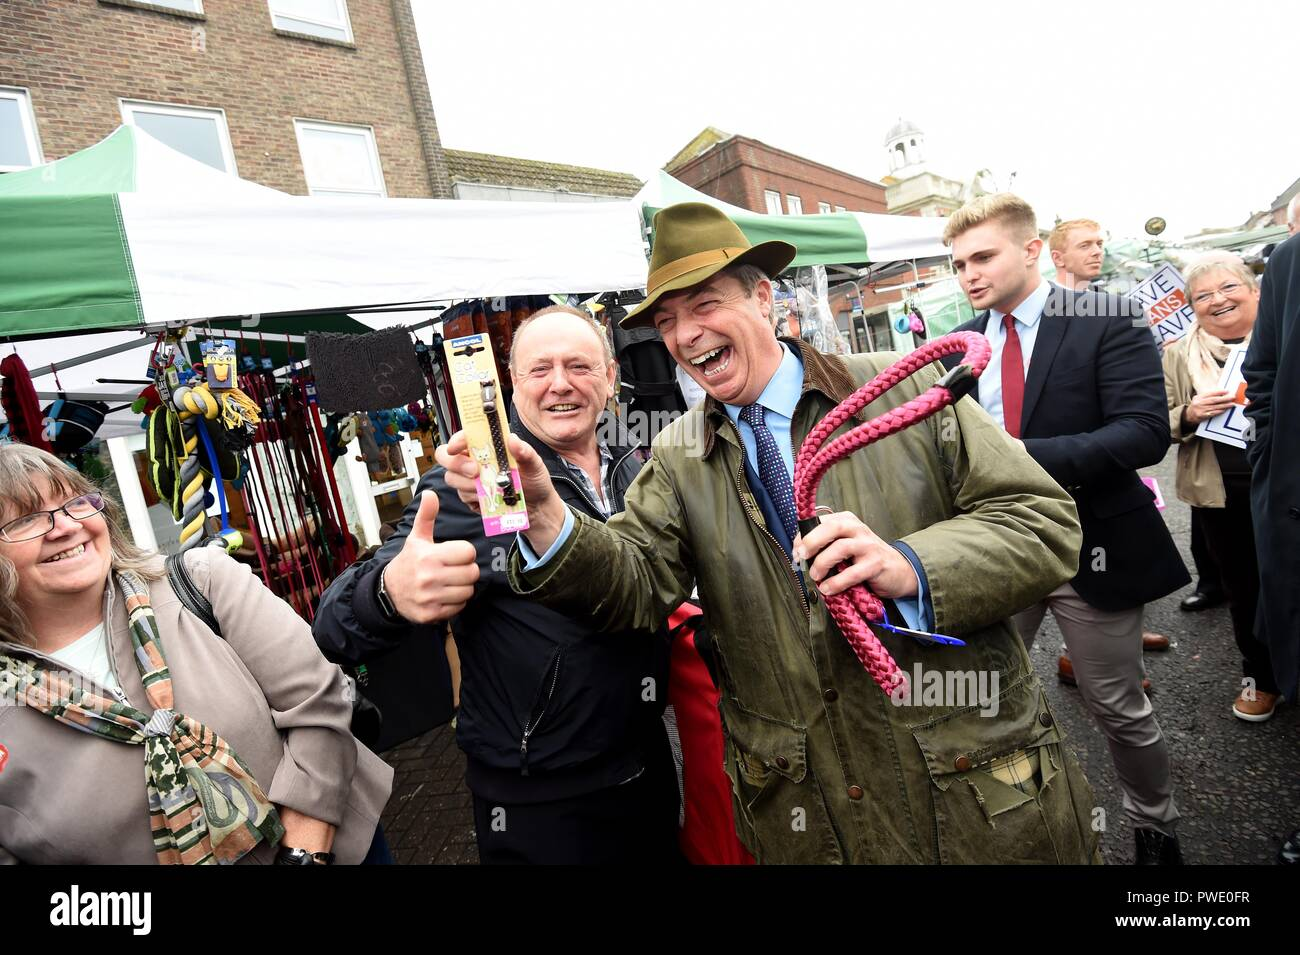 Bournemouth, UK. 15th Oct 2018. Nigel Farage MEP visits Bournemouth's Christchurch Market during the Leave Means Leave Brexit tour, UK. A stall holder gifts Nigel a leash and collar to 'control Theresa May' Credit: Finnbarr Webster/Alamy Live News - Stock Image